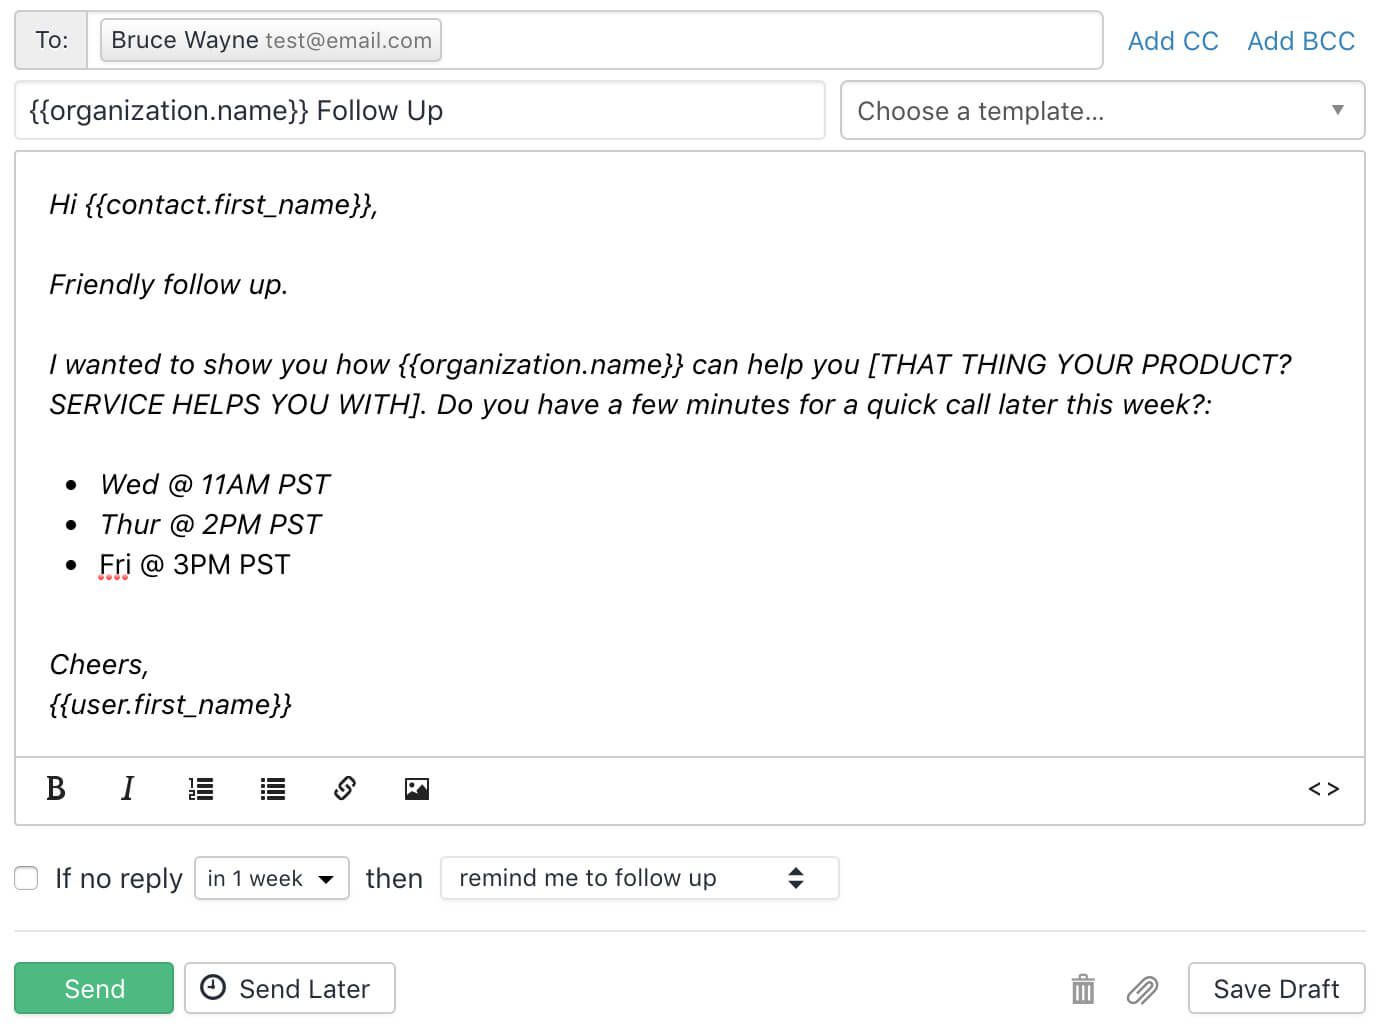 007 Phenomenal Write Follow Up Email After No Response Highest Clarity Full